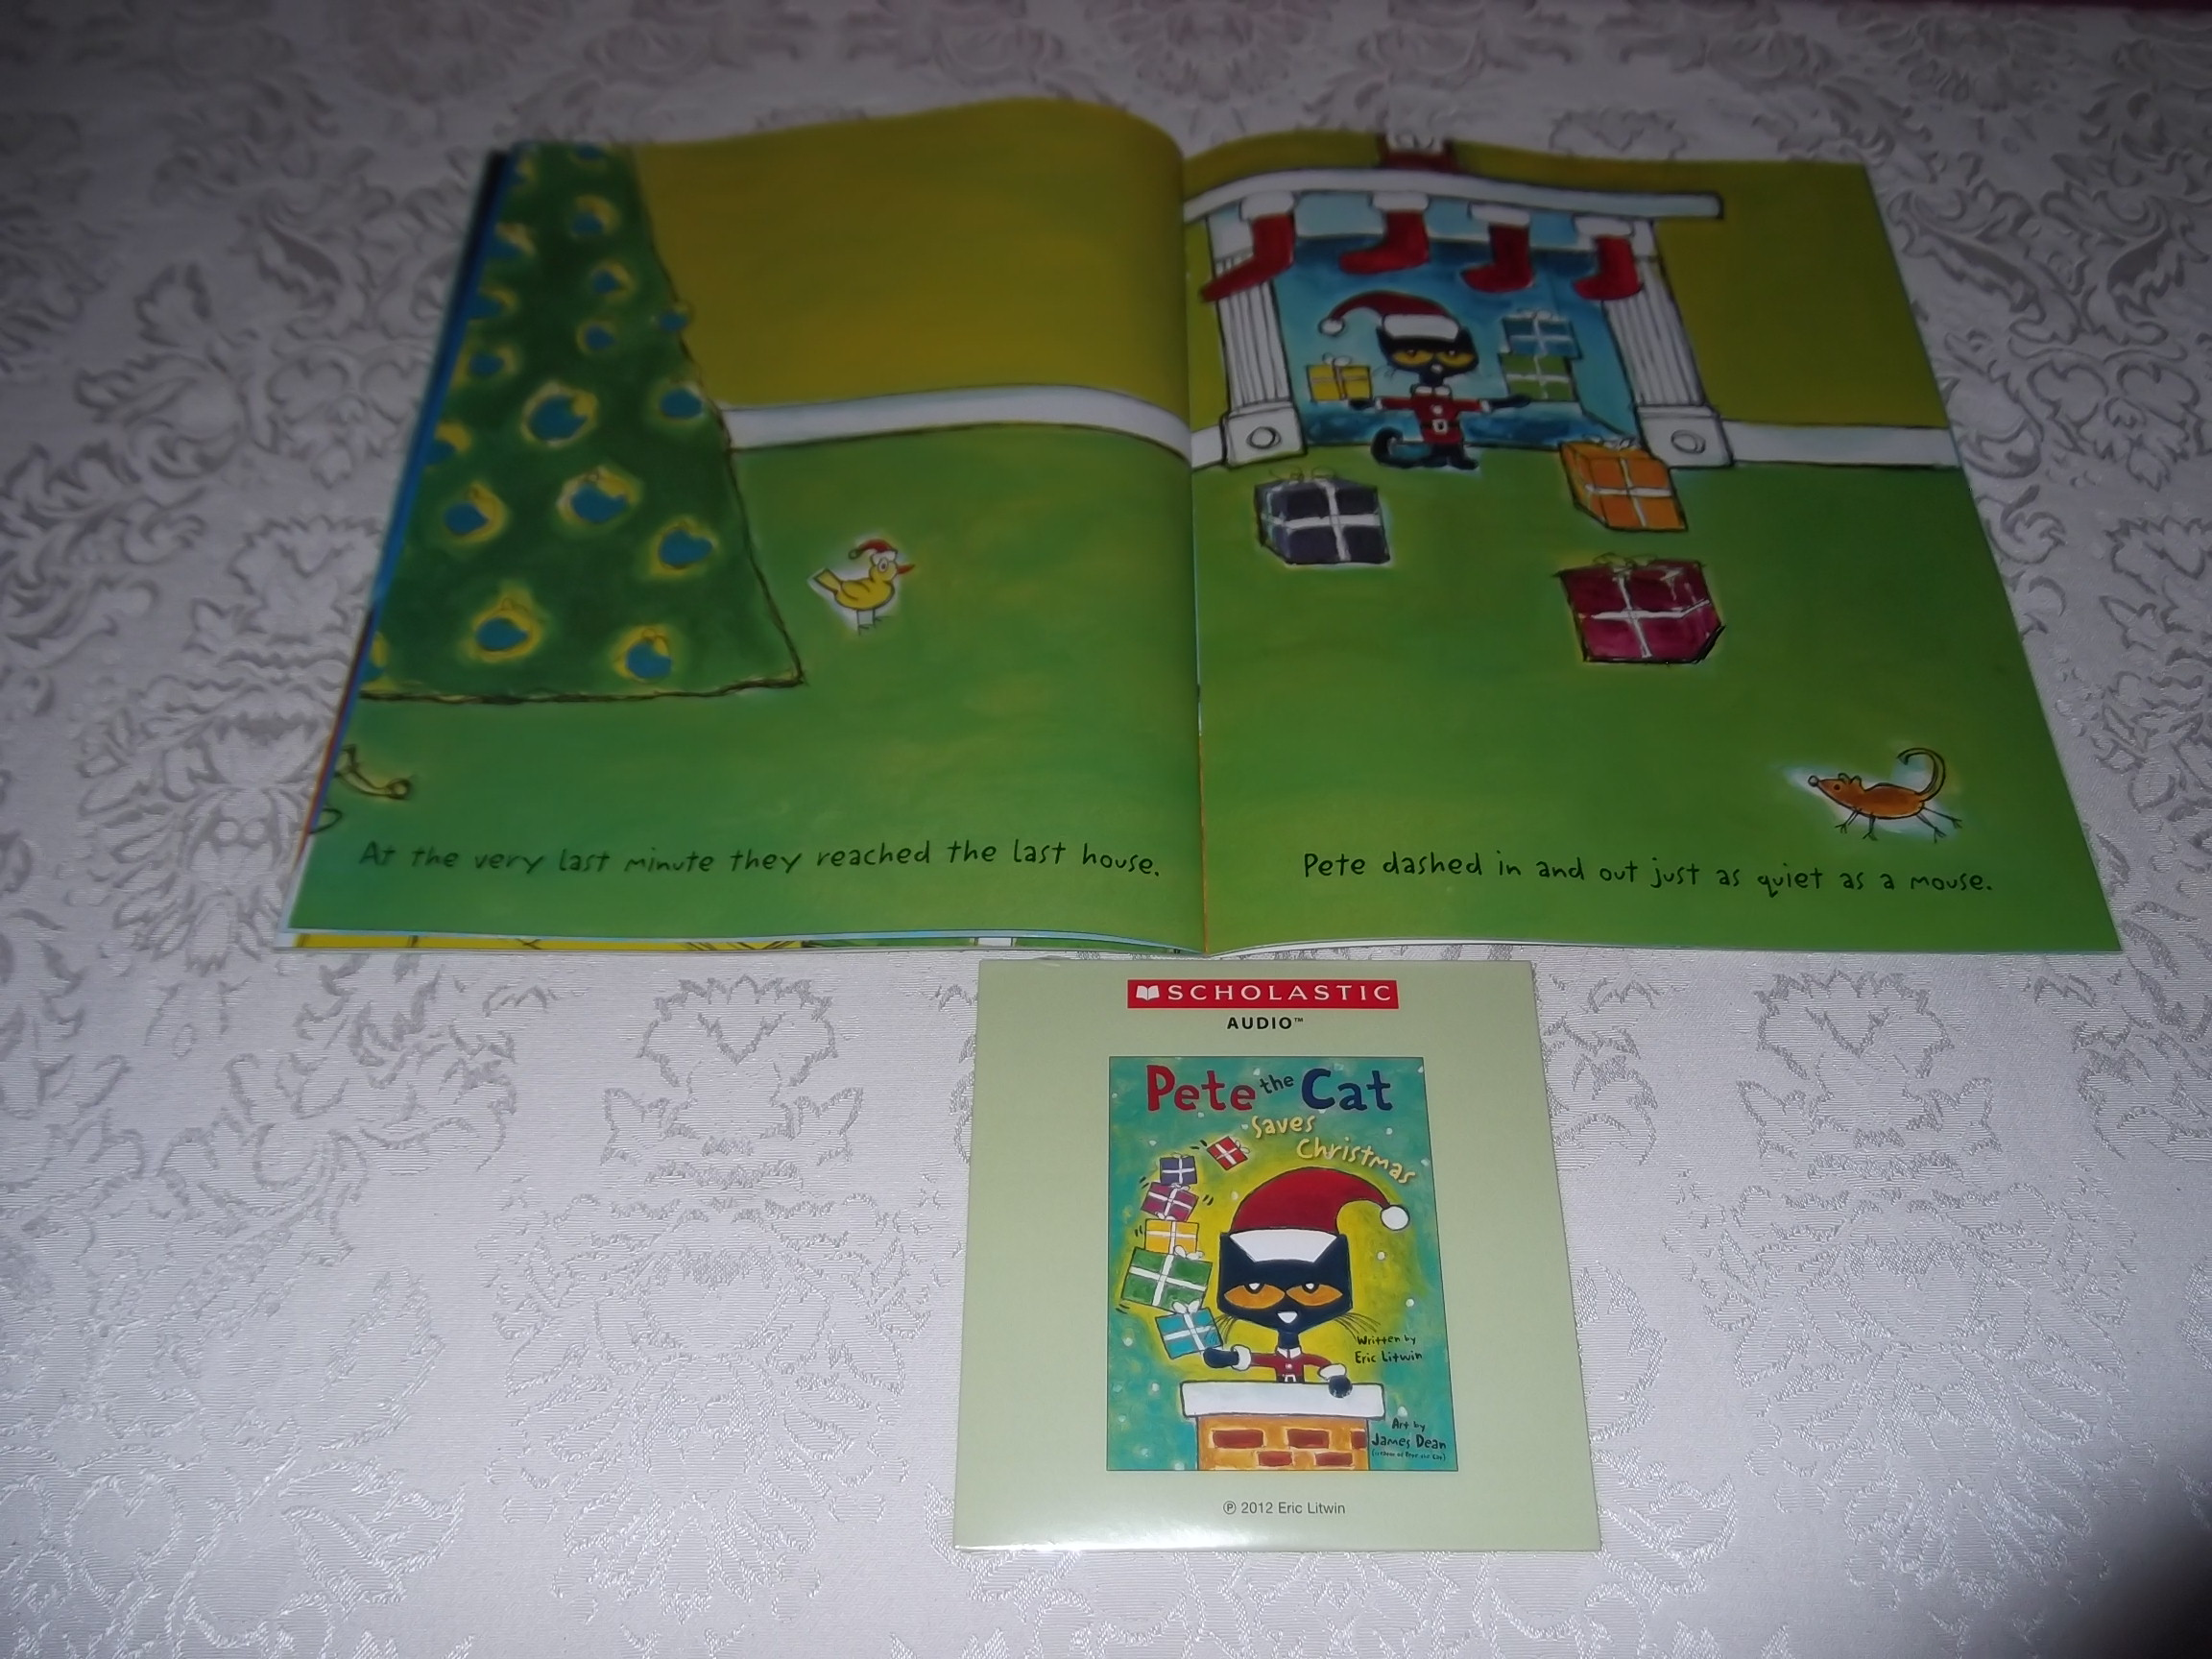 Image 4 of Pete the Cat Saves Christmas Brand New Audio CD and SC Eric Litwin